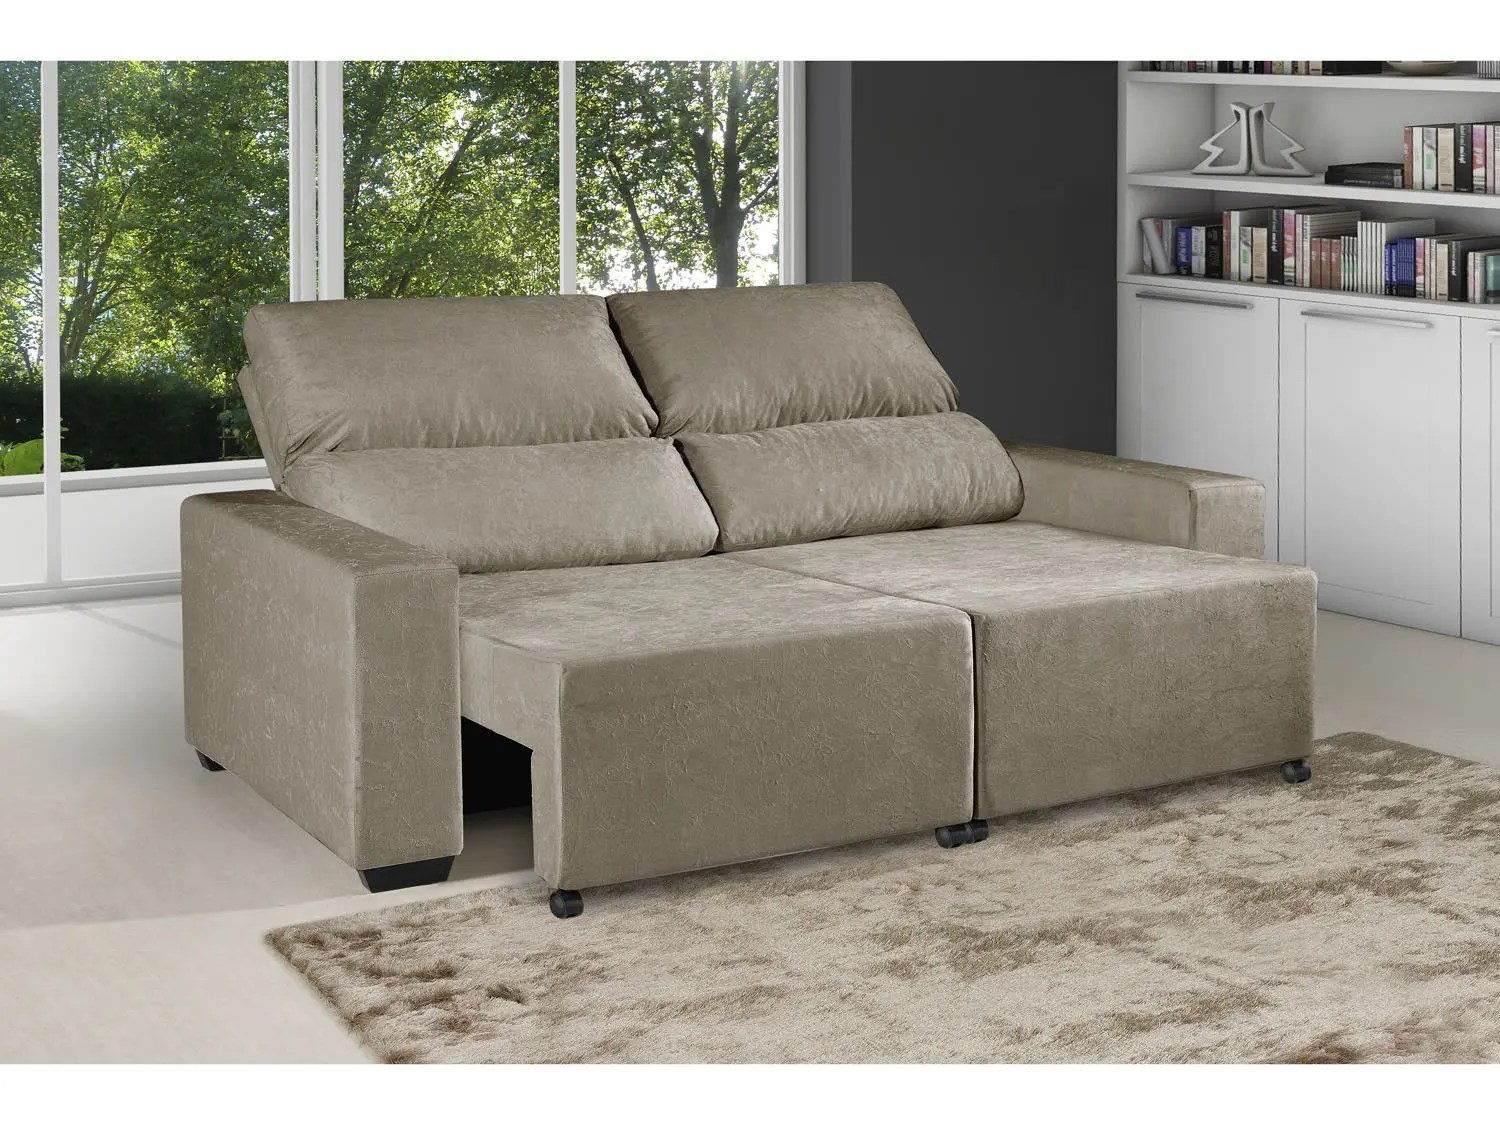 Sofa Retratil E Reclinavel Impermeavel Sofá Retrátil Reclinável 3 Lugares Suede Elegance